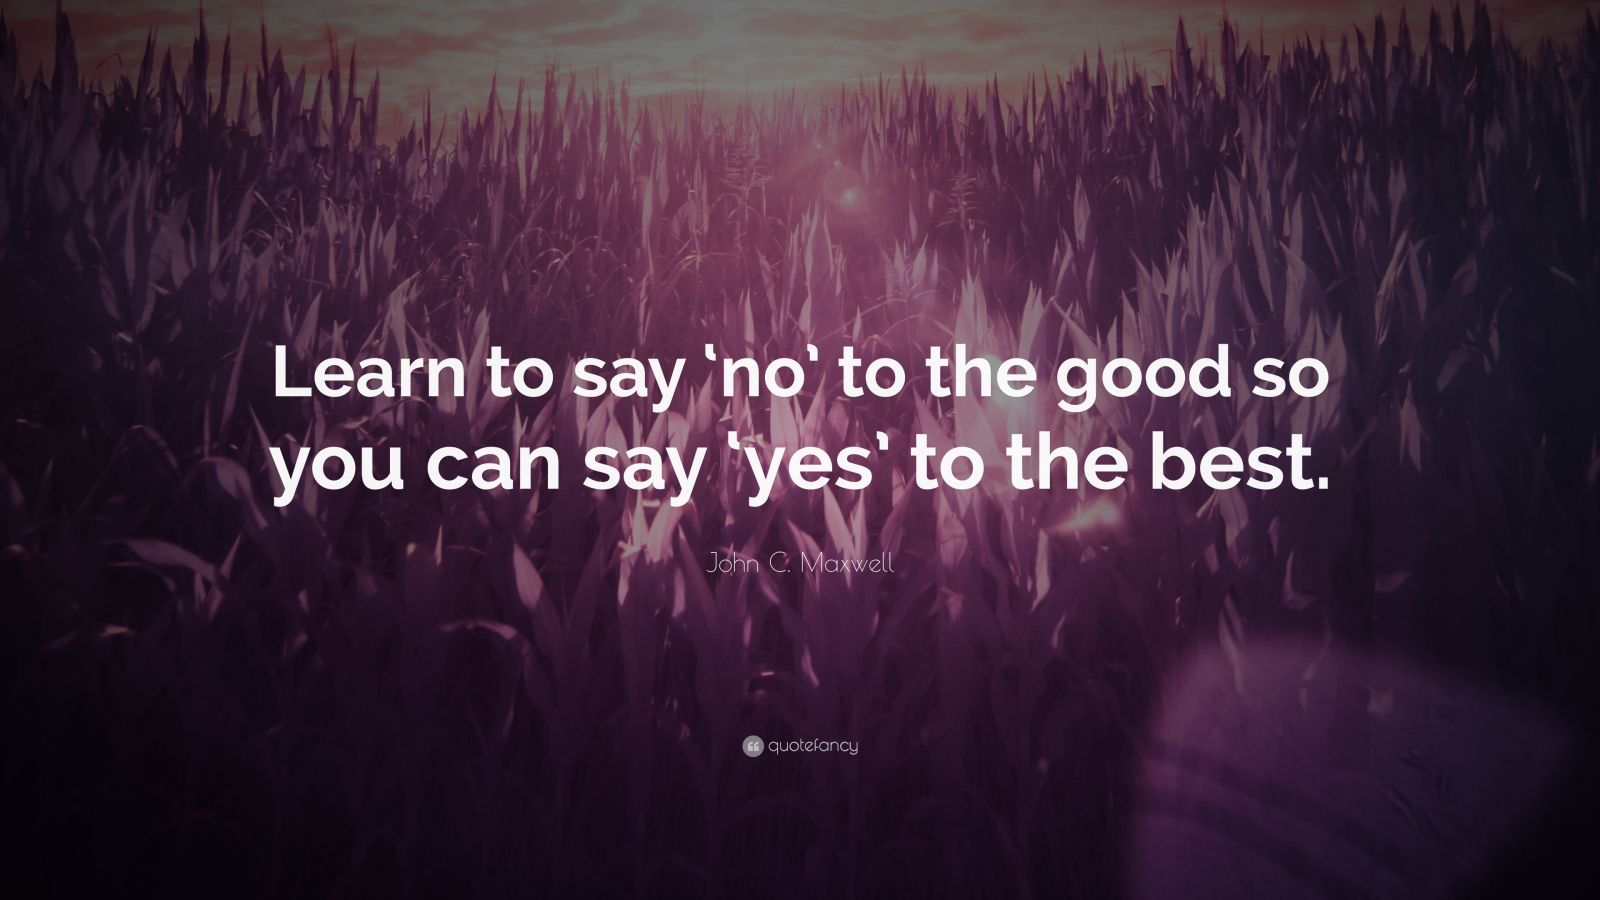 """John C. Maxwell Quote: """"Learn to say 'no' to the good so you can say 'yes' to the best."""""""